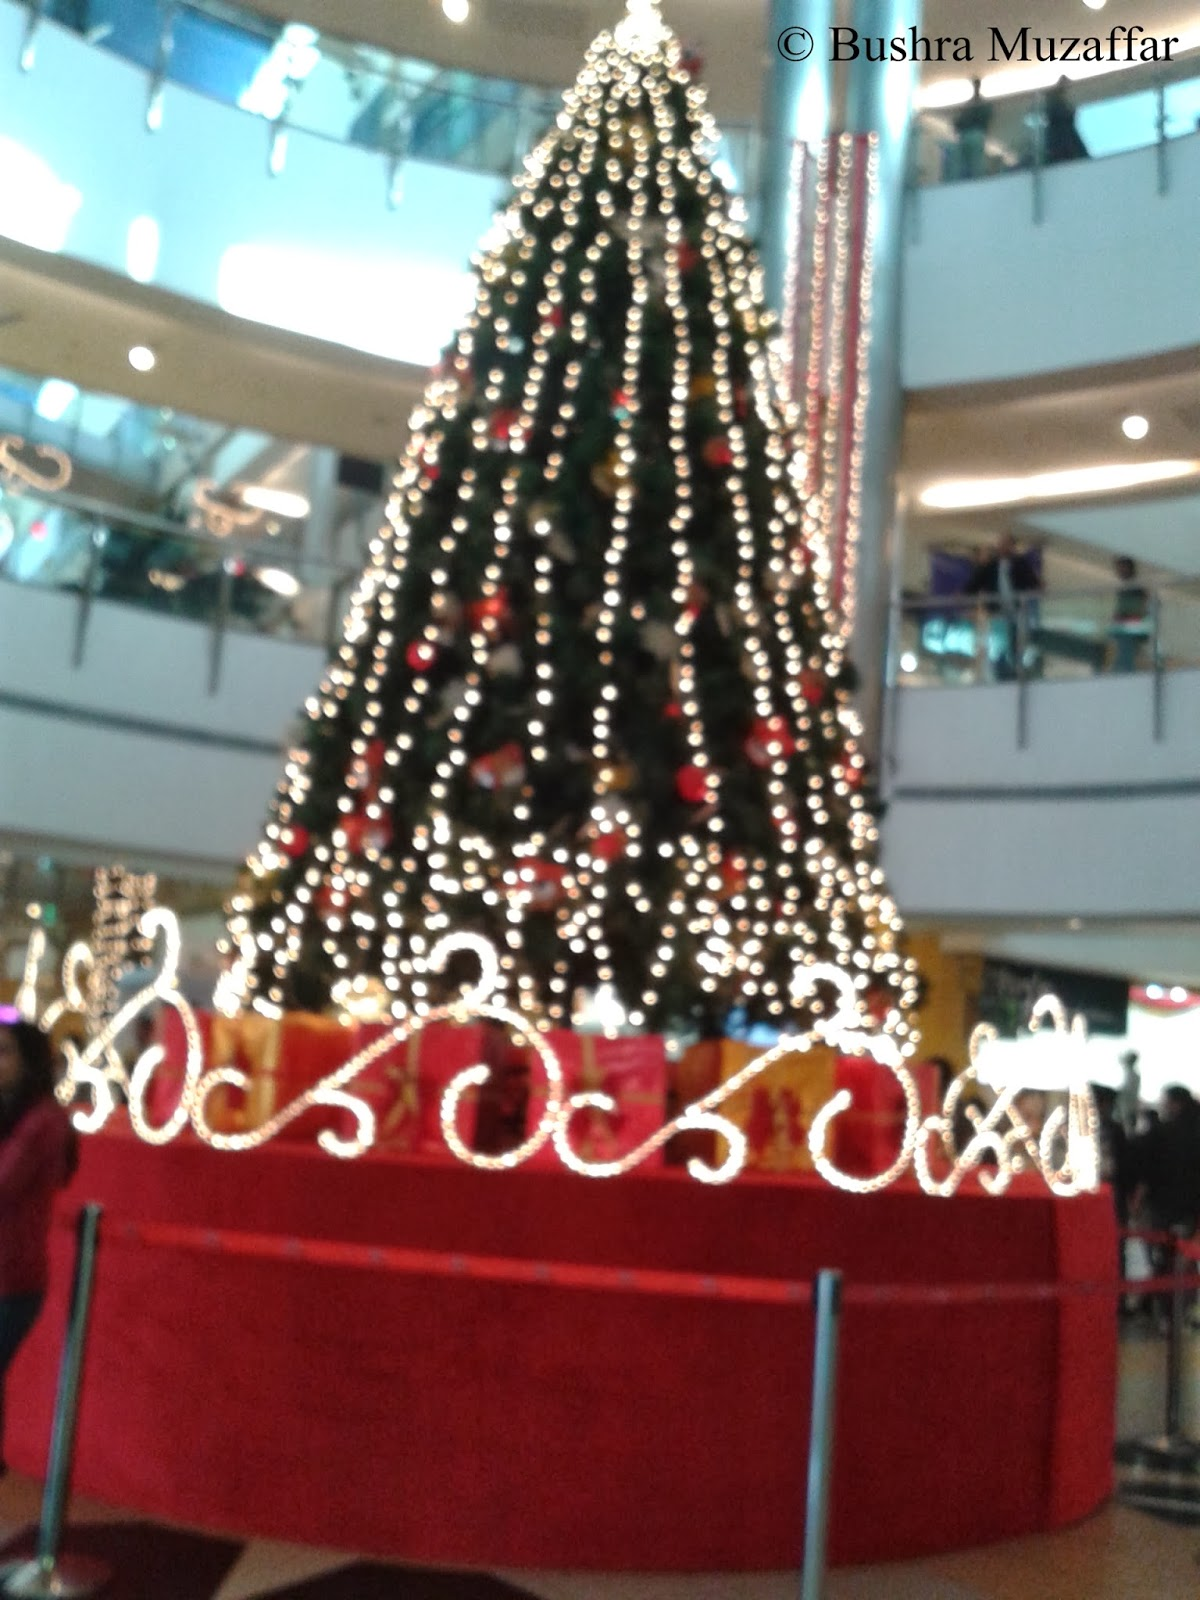 Christmas Tree at the center of the TGIP Mall, Noida